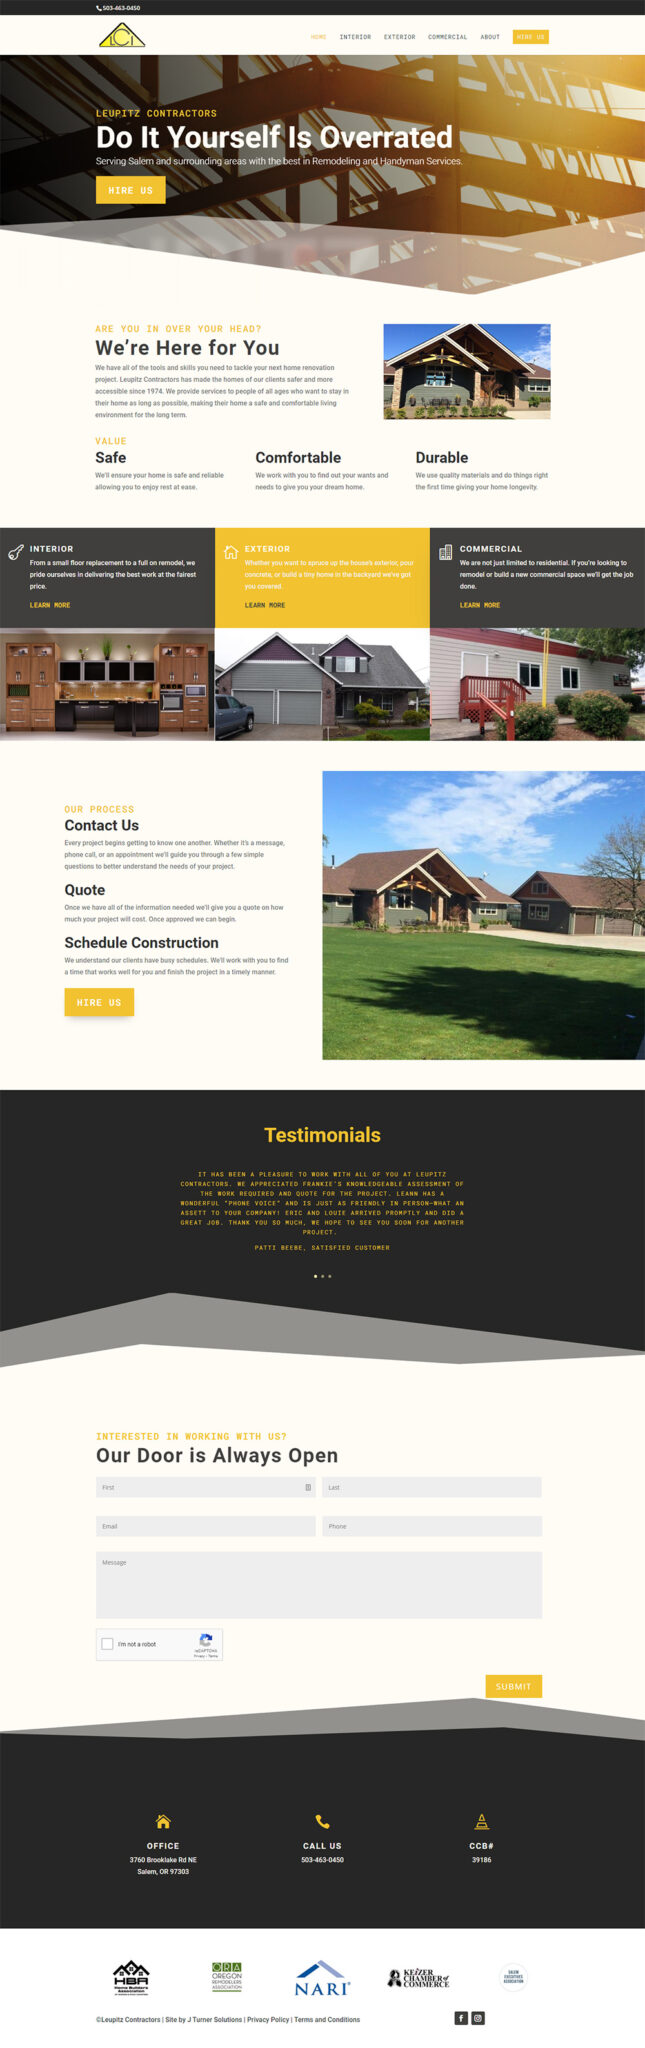 Leupitz Contractors Home page after redesign